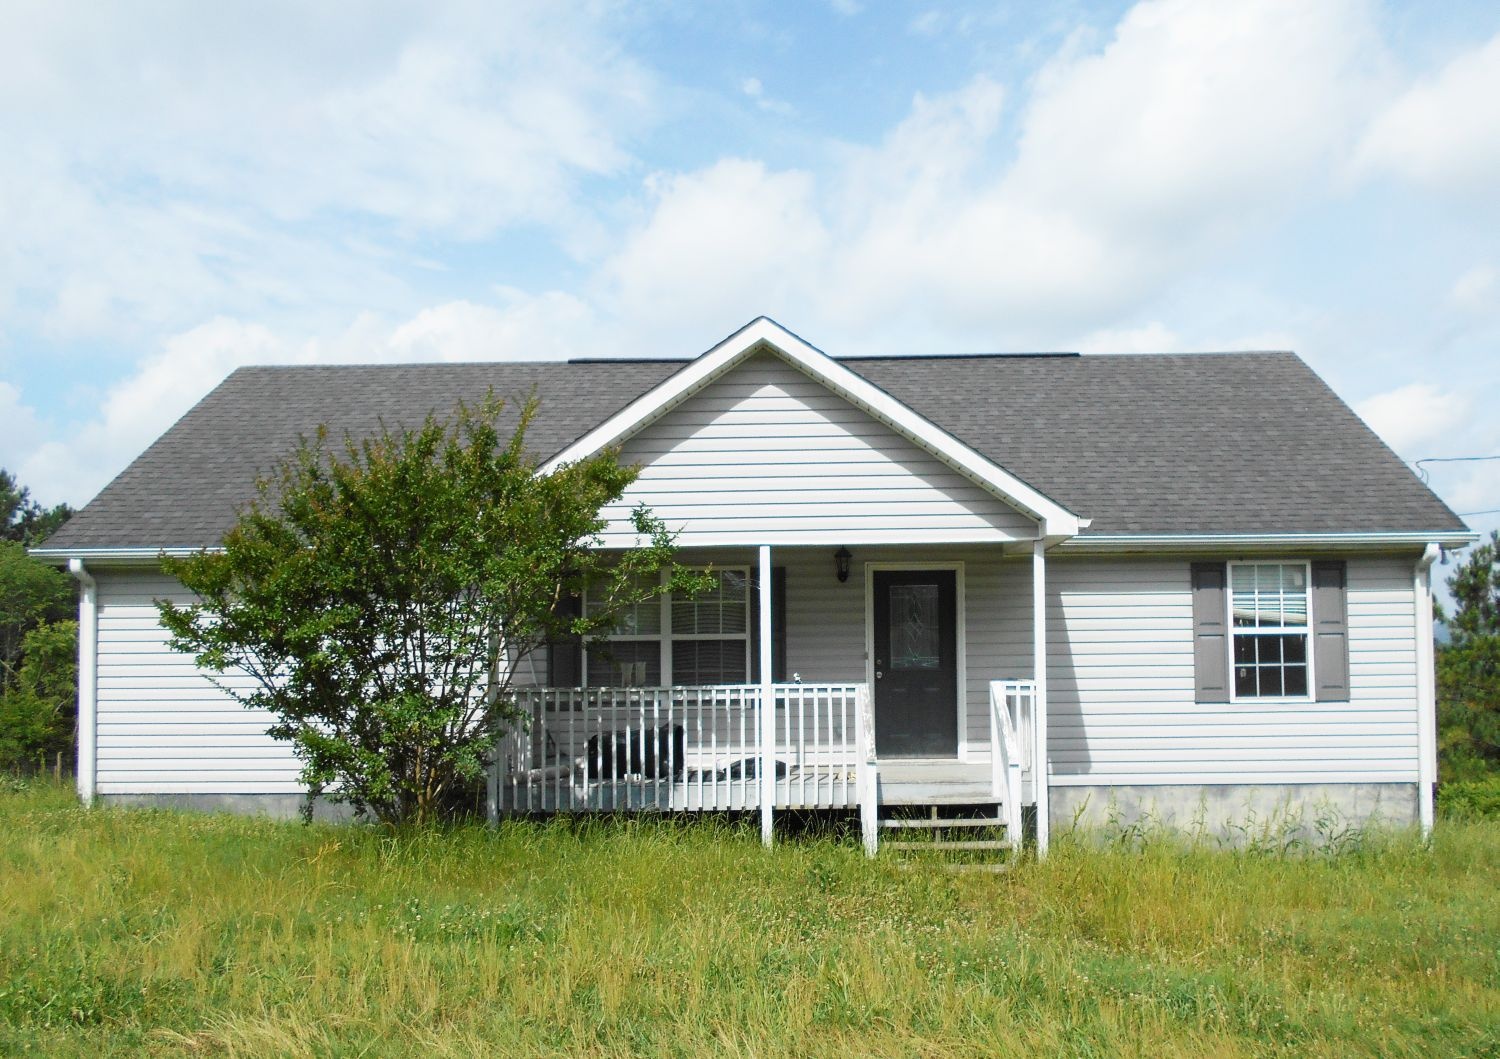 Home and Contents 08-10-19 — Heritage Realty & Auction Co Inc